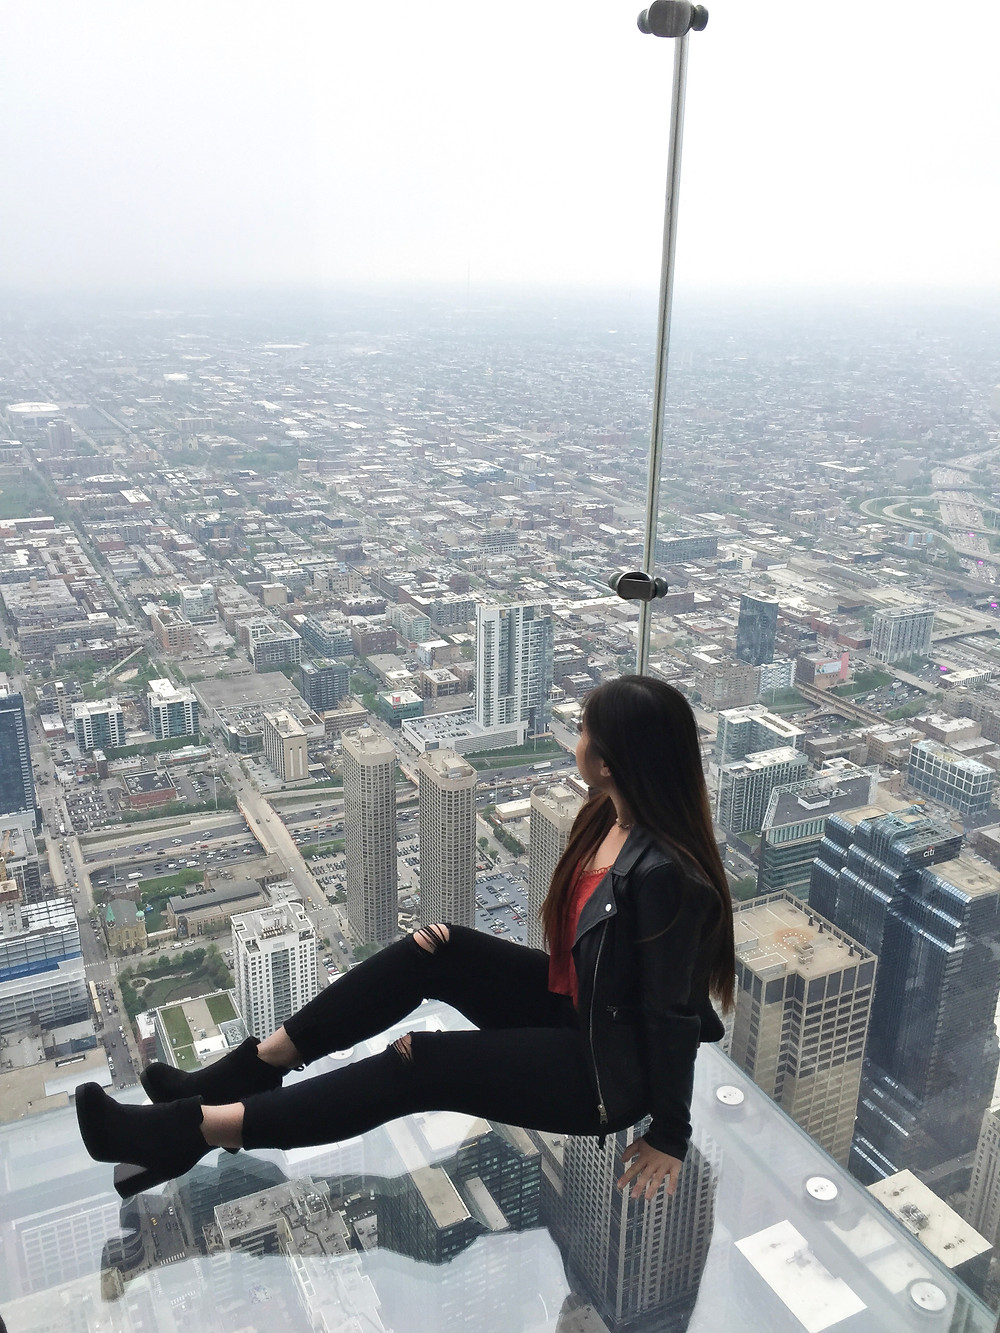 Skydeck at Willis Tower in Downtown Chicago sitting on glass platform